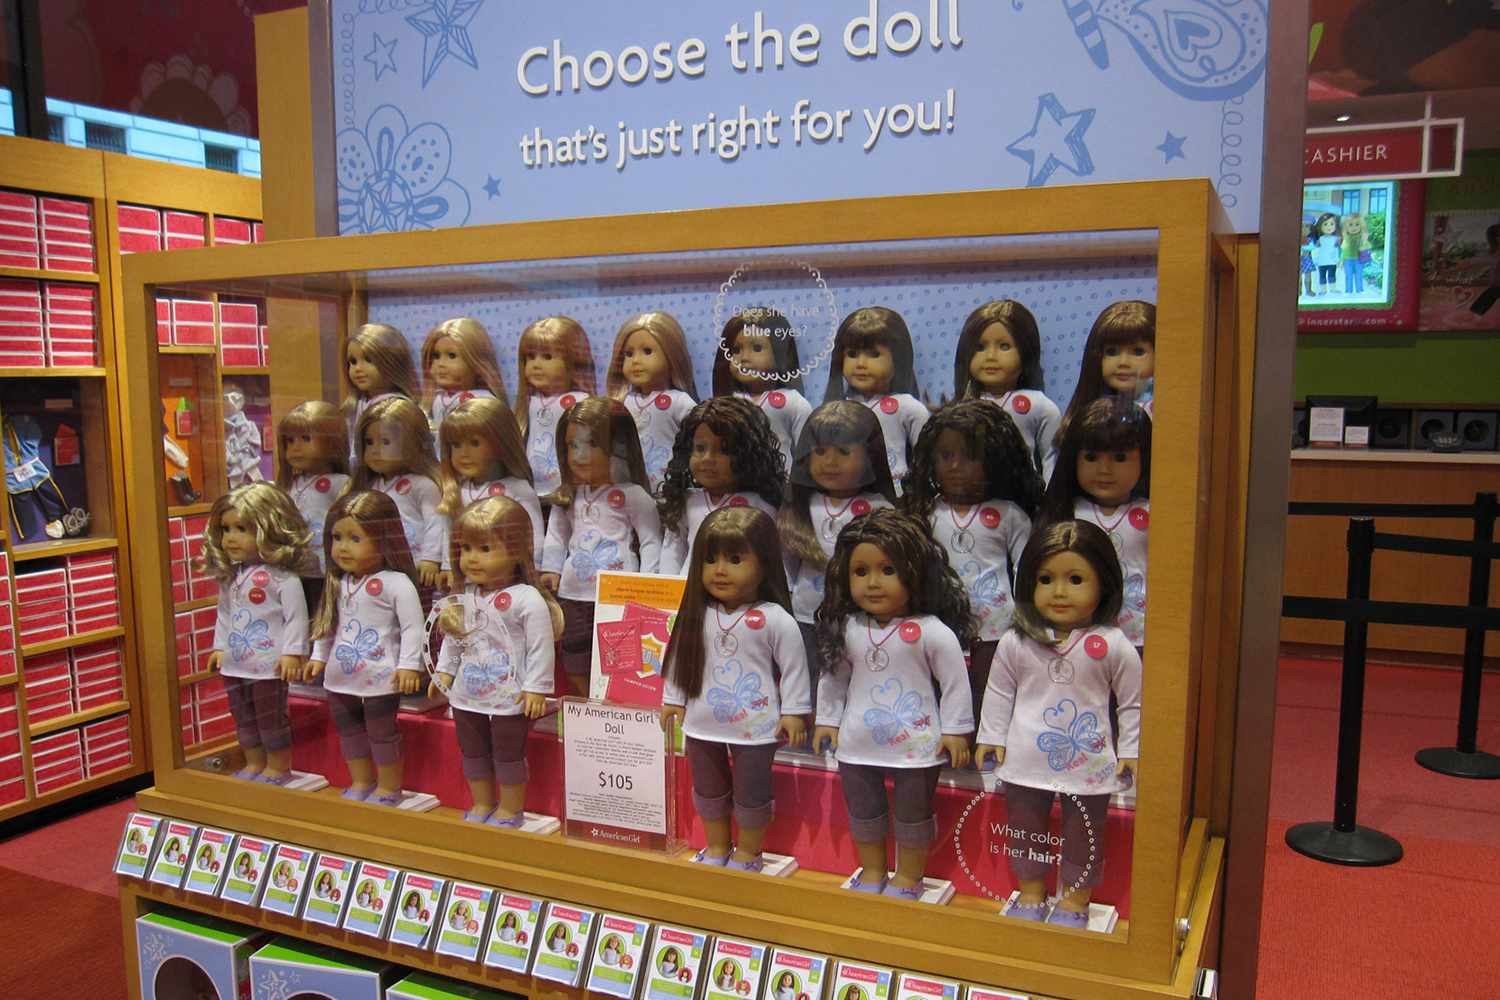 American Girl Place NYC